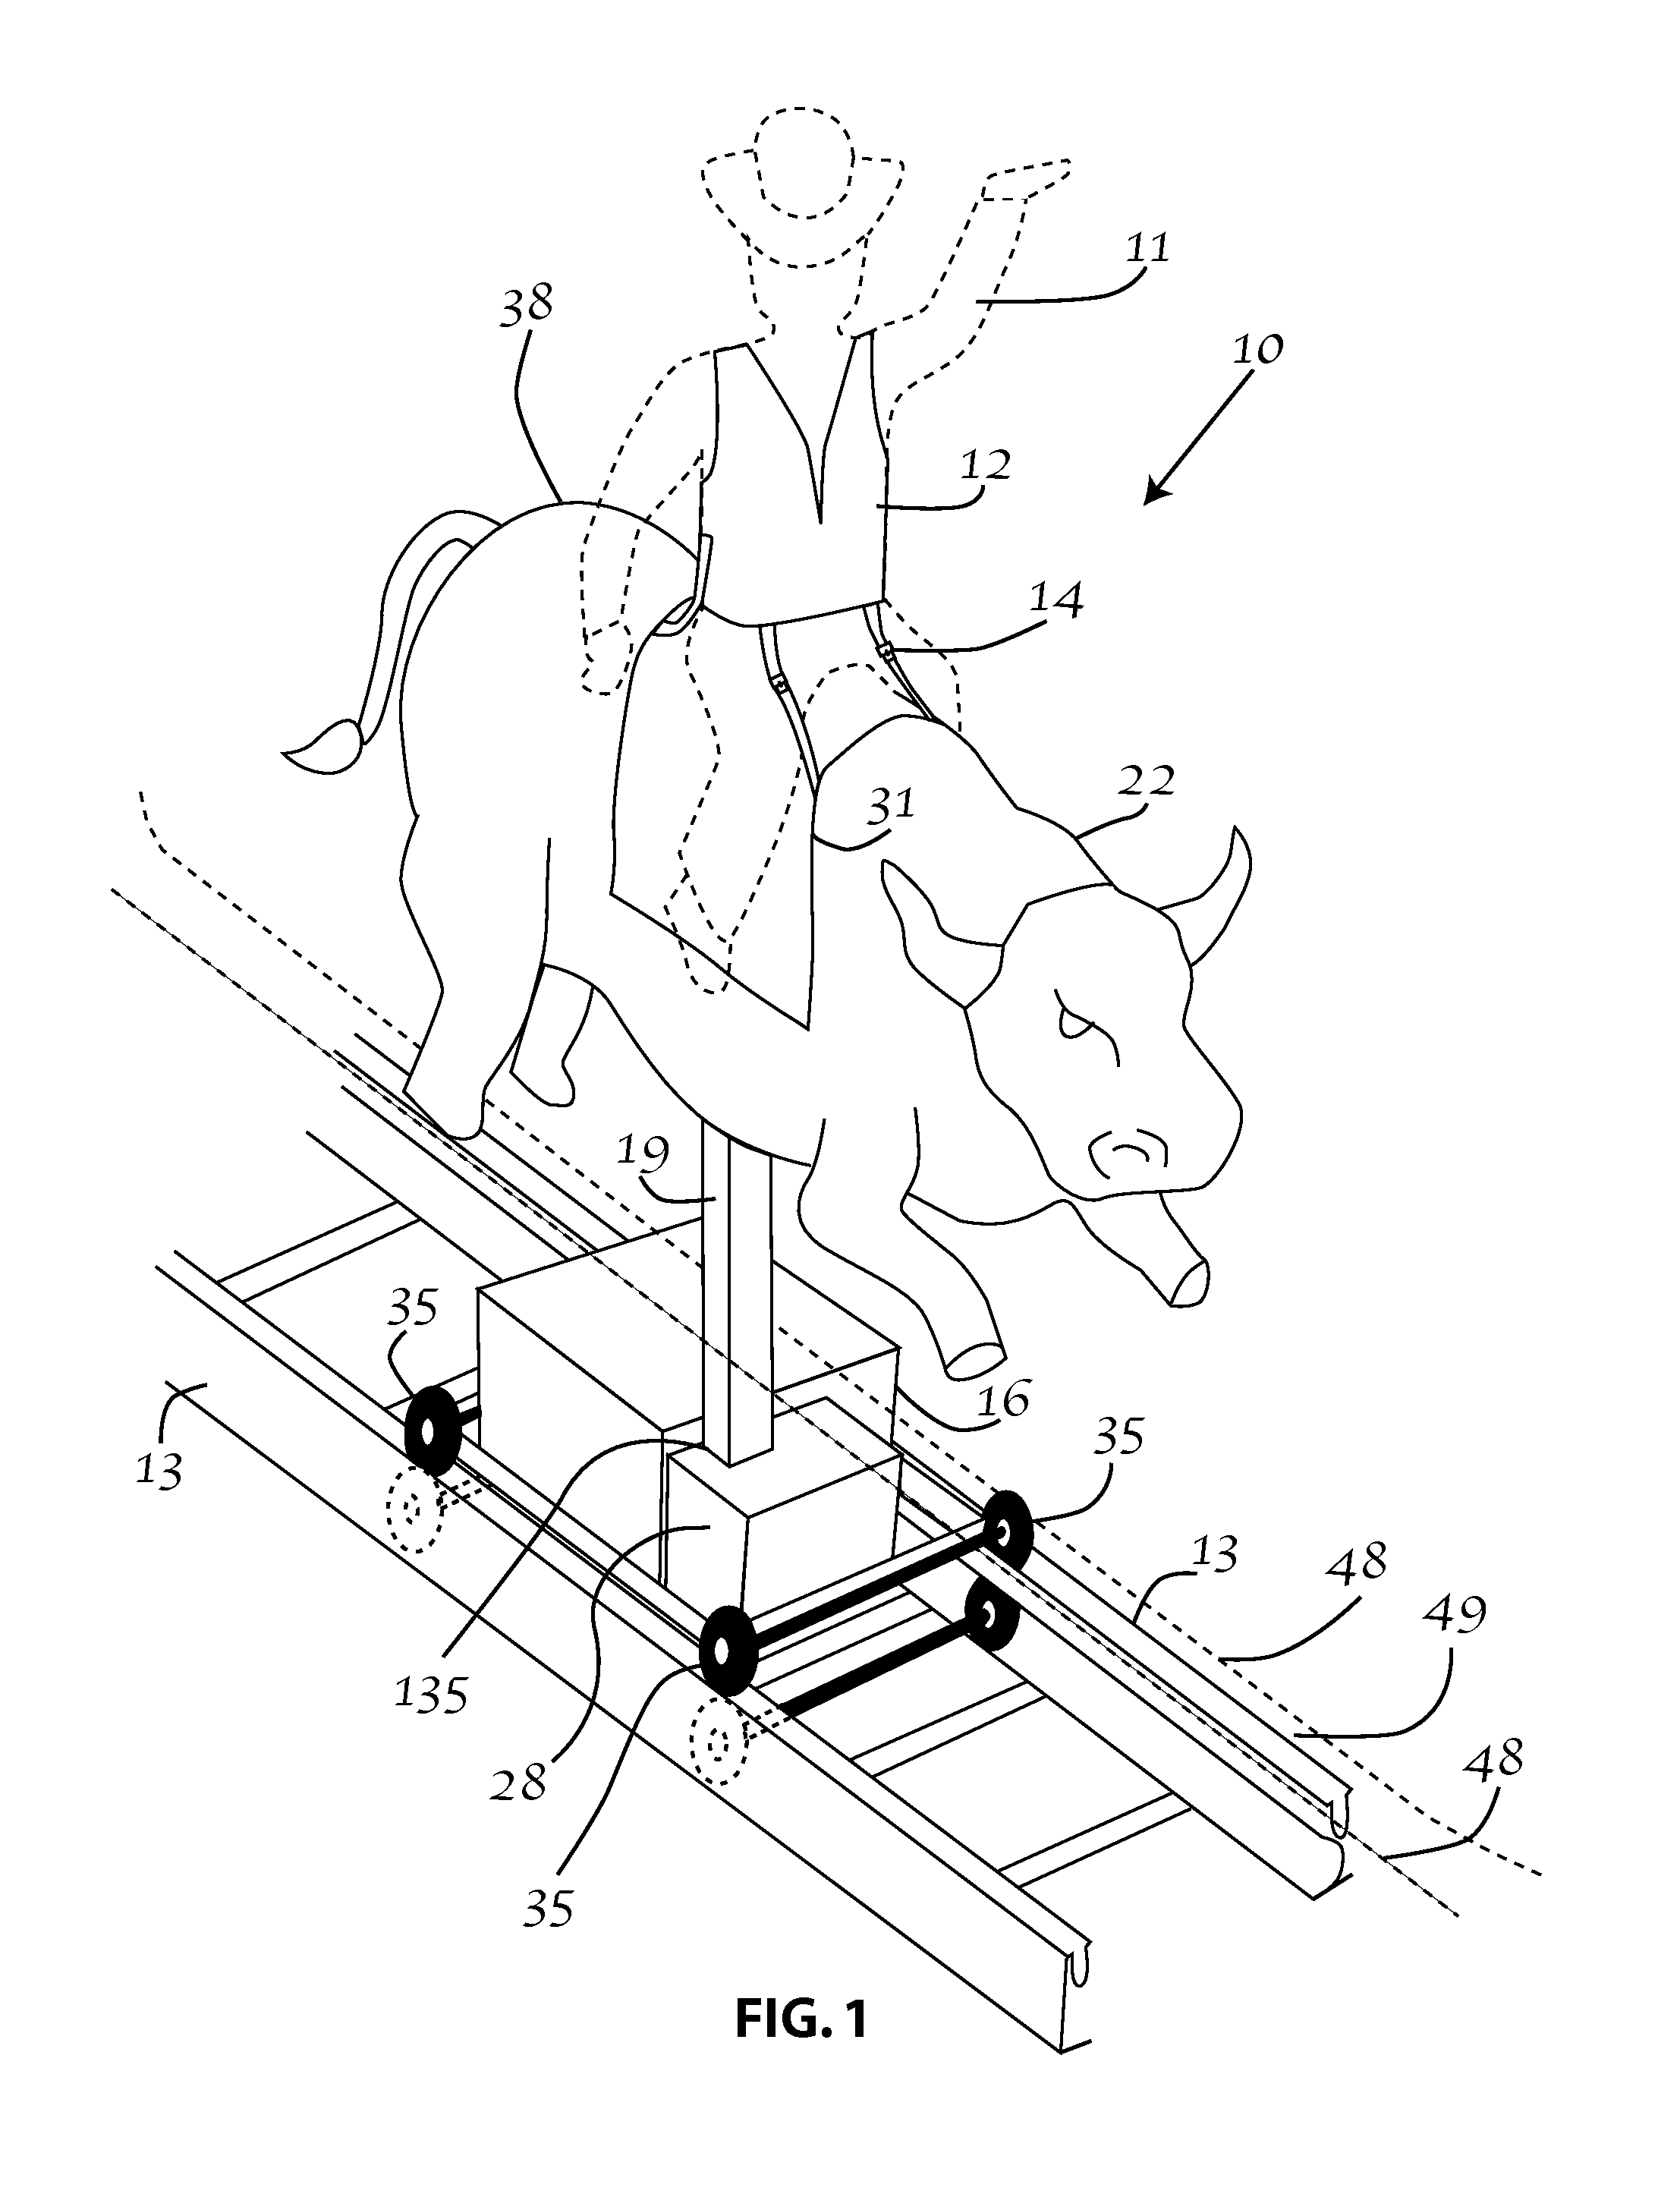 US20110275444A1 20111110 D00001 patent us20110275444 mechanical device for simulating an animal mechanical bull wiring diagram at webbmarketing.co